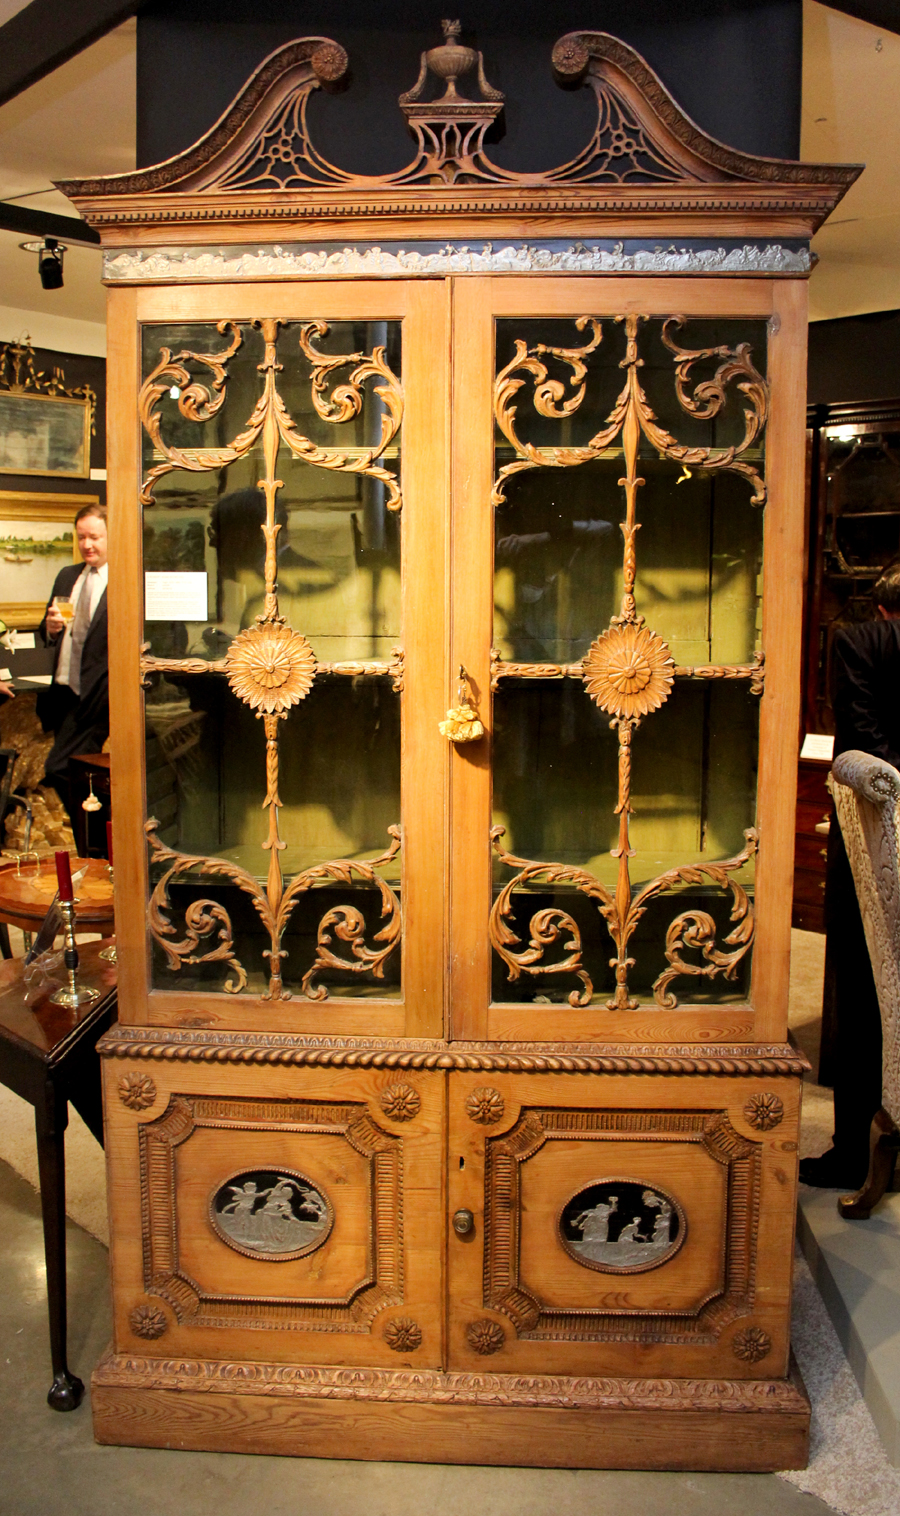 George III bookcase in the manner of Robert Adam, G. Sergeant Antiques, Woodbury, Conn.